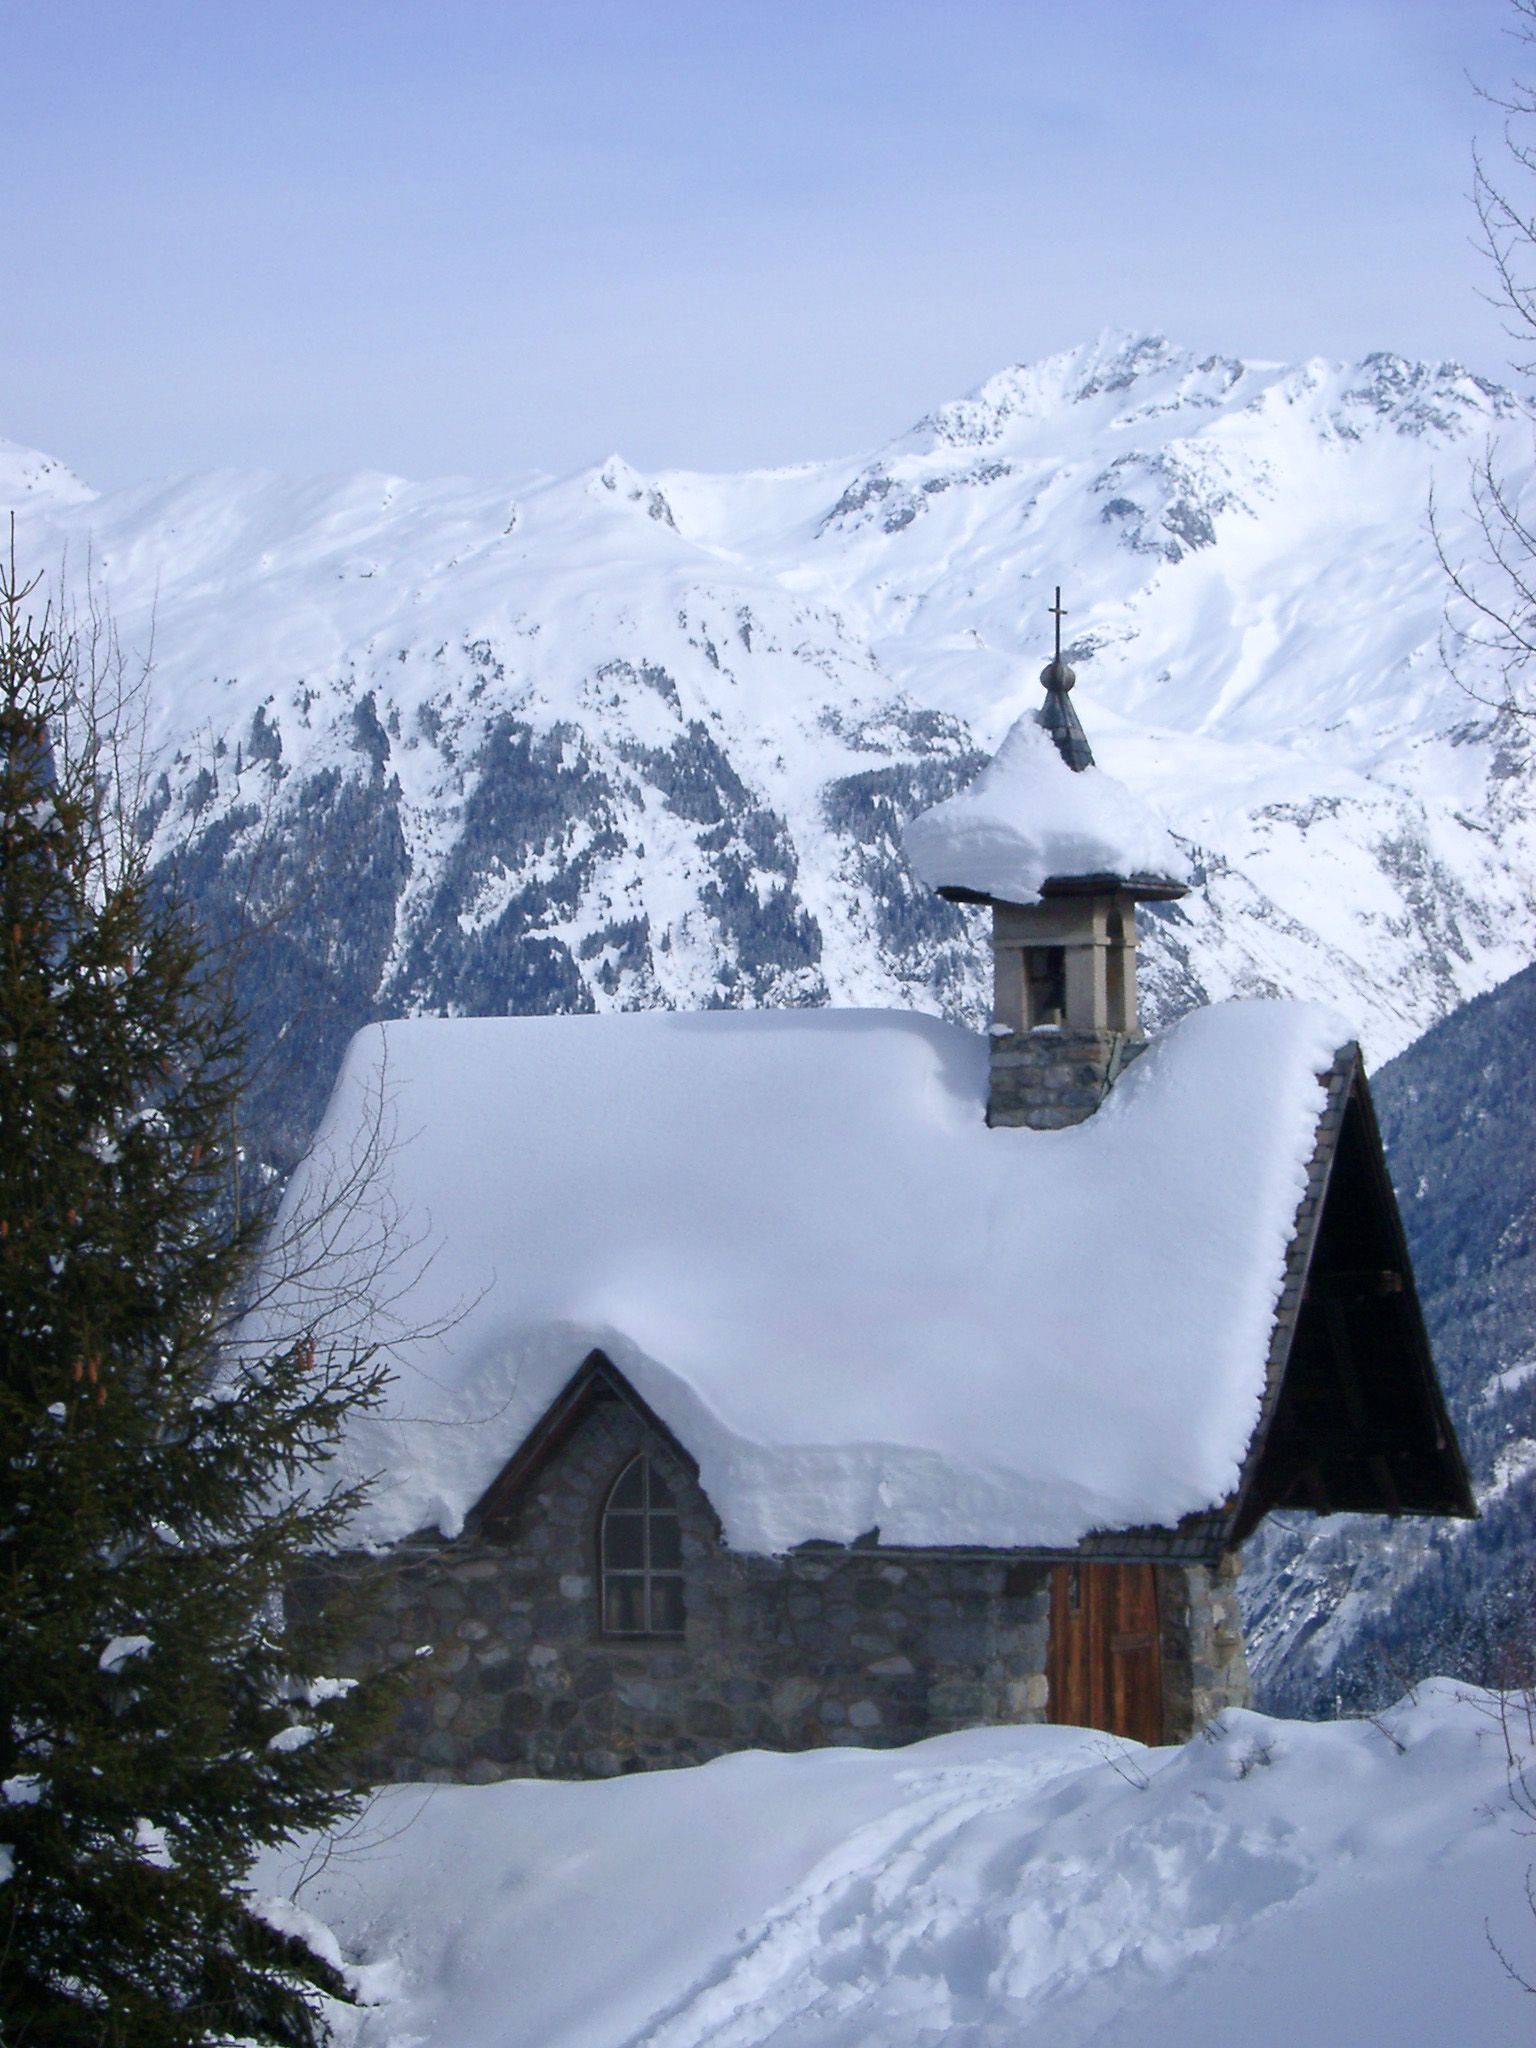 Historic Small Architectural Christian Church Building Filled with Snow, Captured with Huge Mountain on Background During Winter Season.